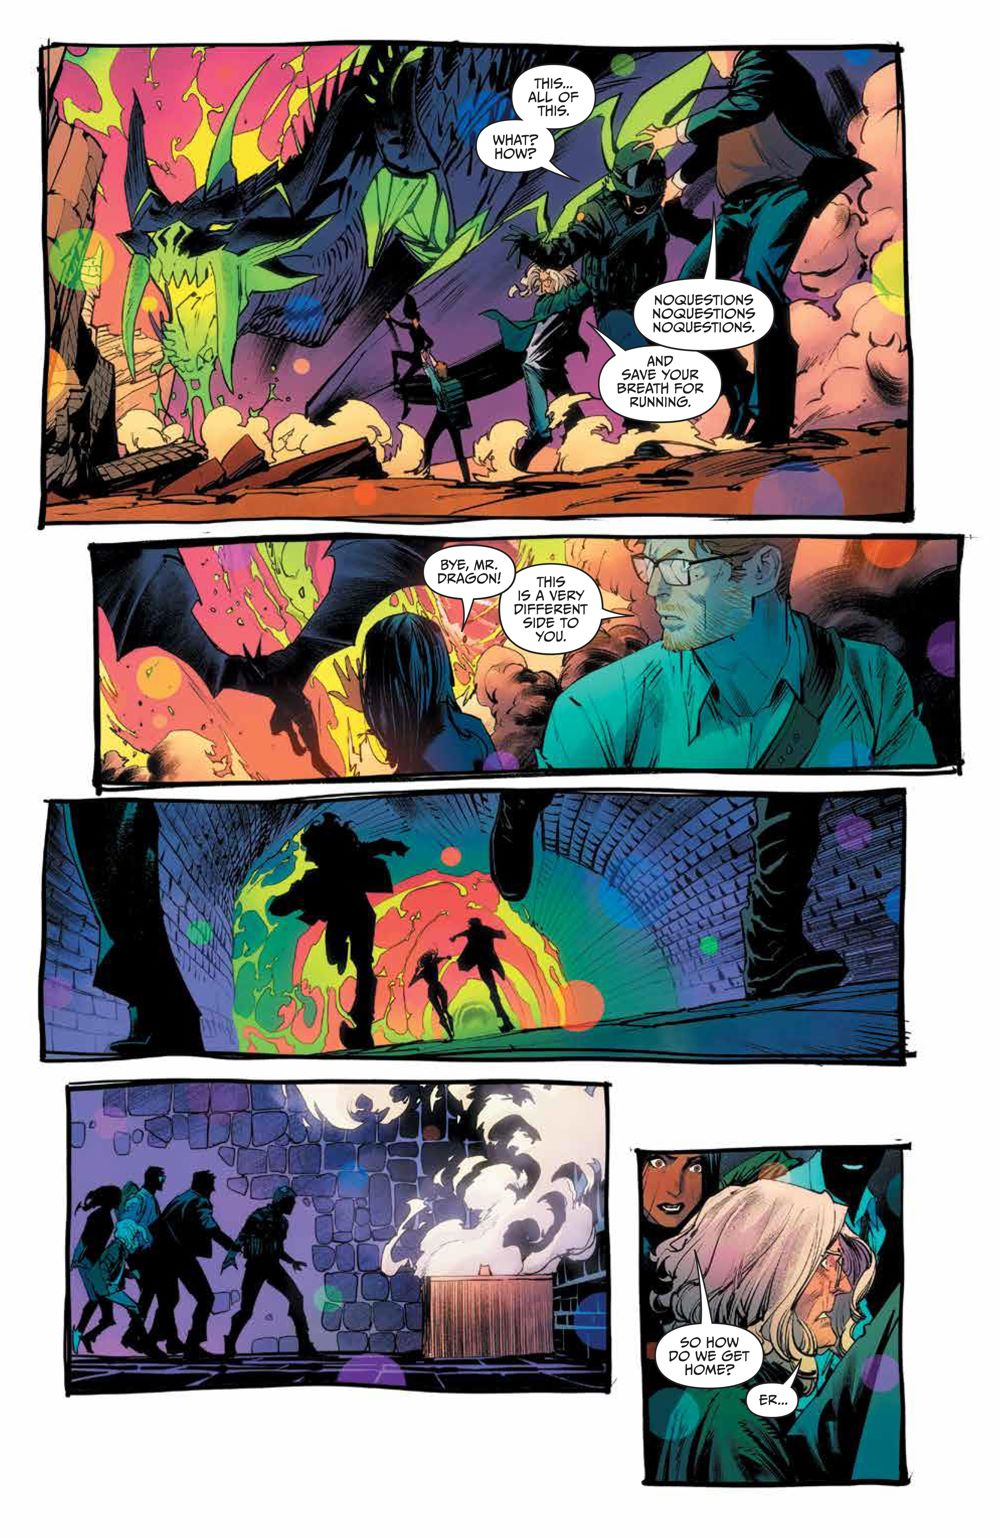 OnceFuture_018_PRESS_8 ComicList Previews: ONCE AND FUTURE #18